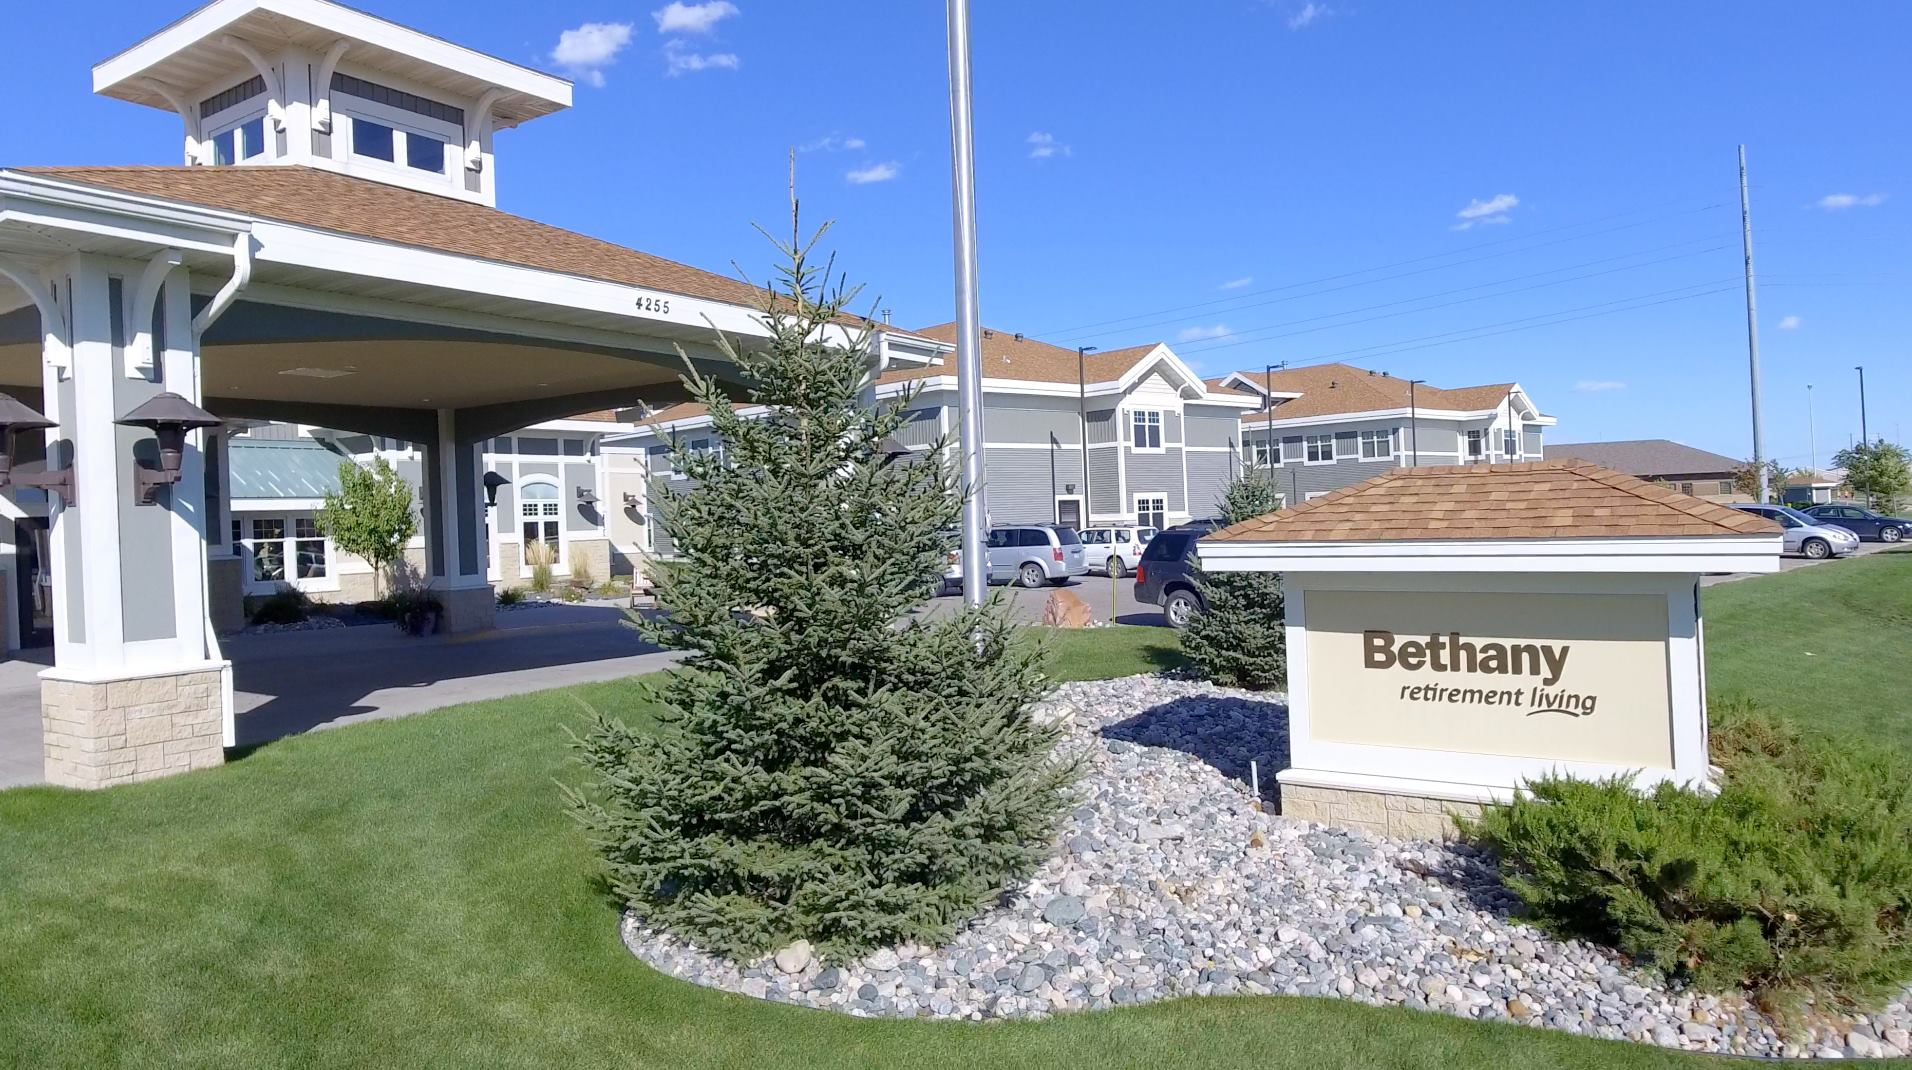 The front exterior of Bethany Retirement Living.